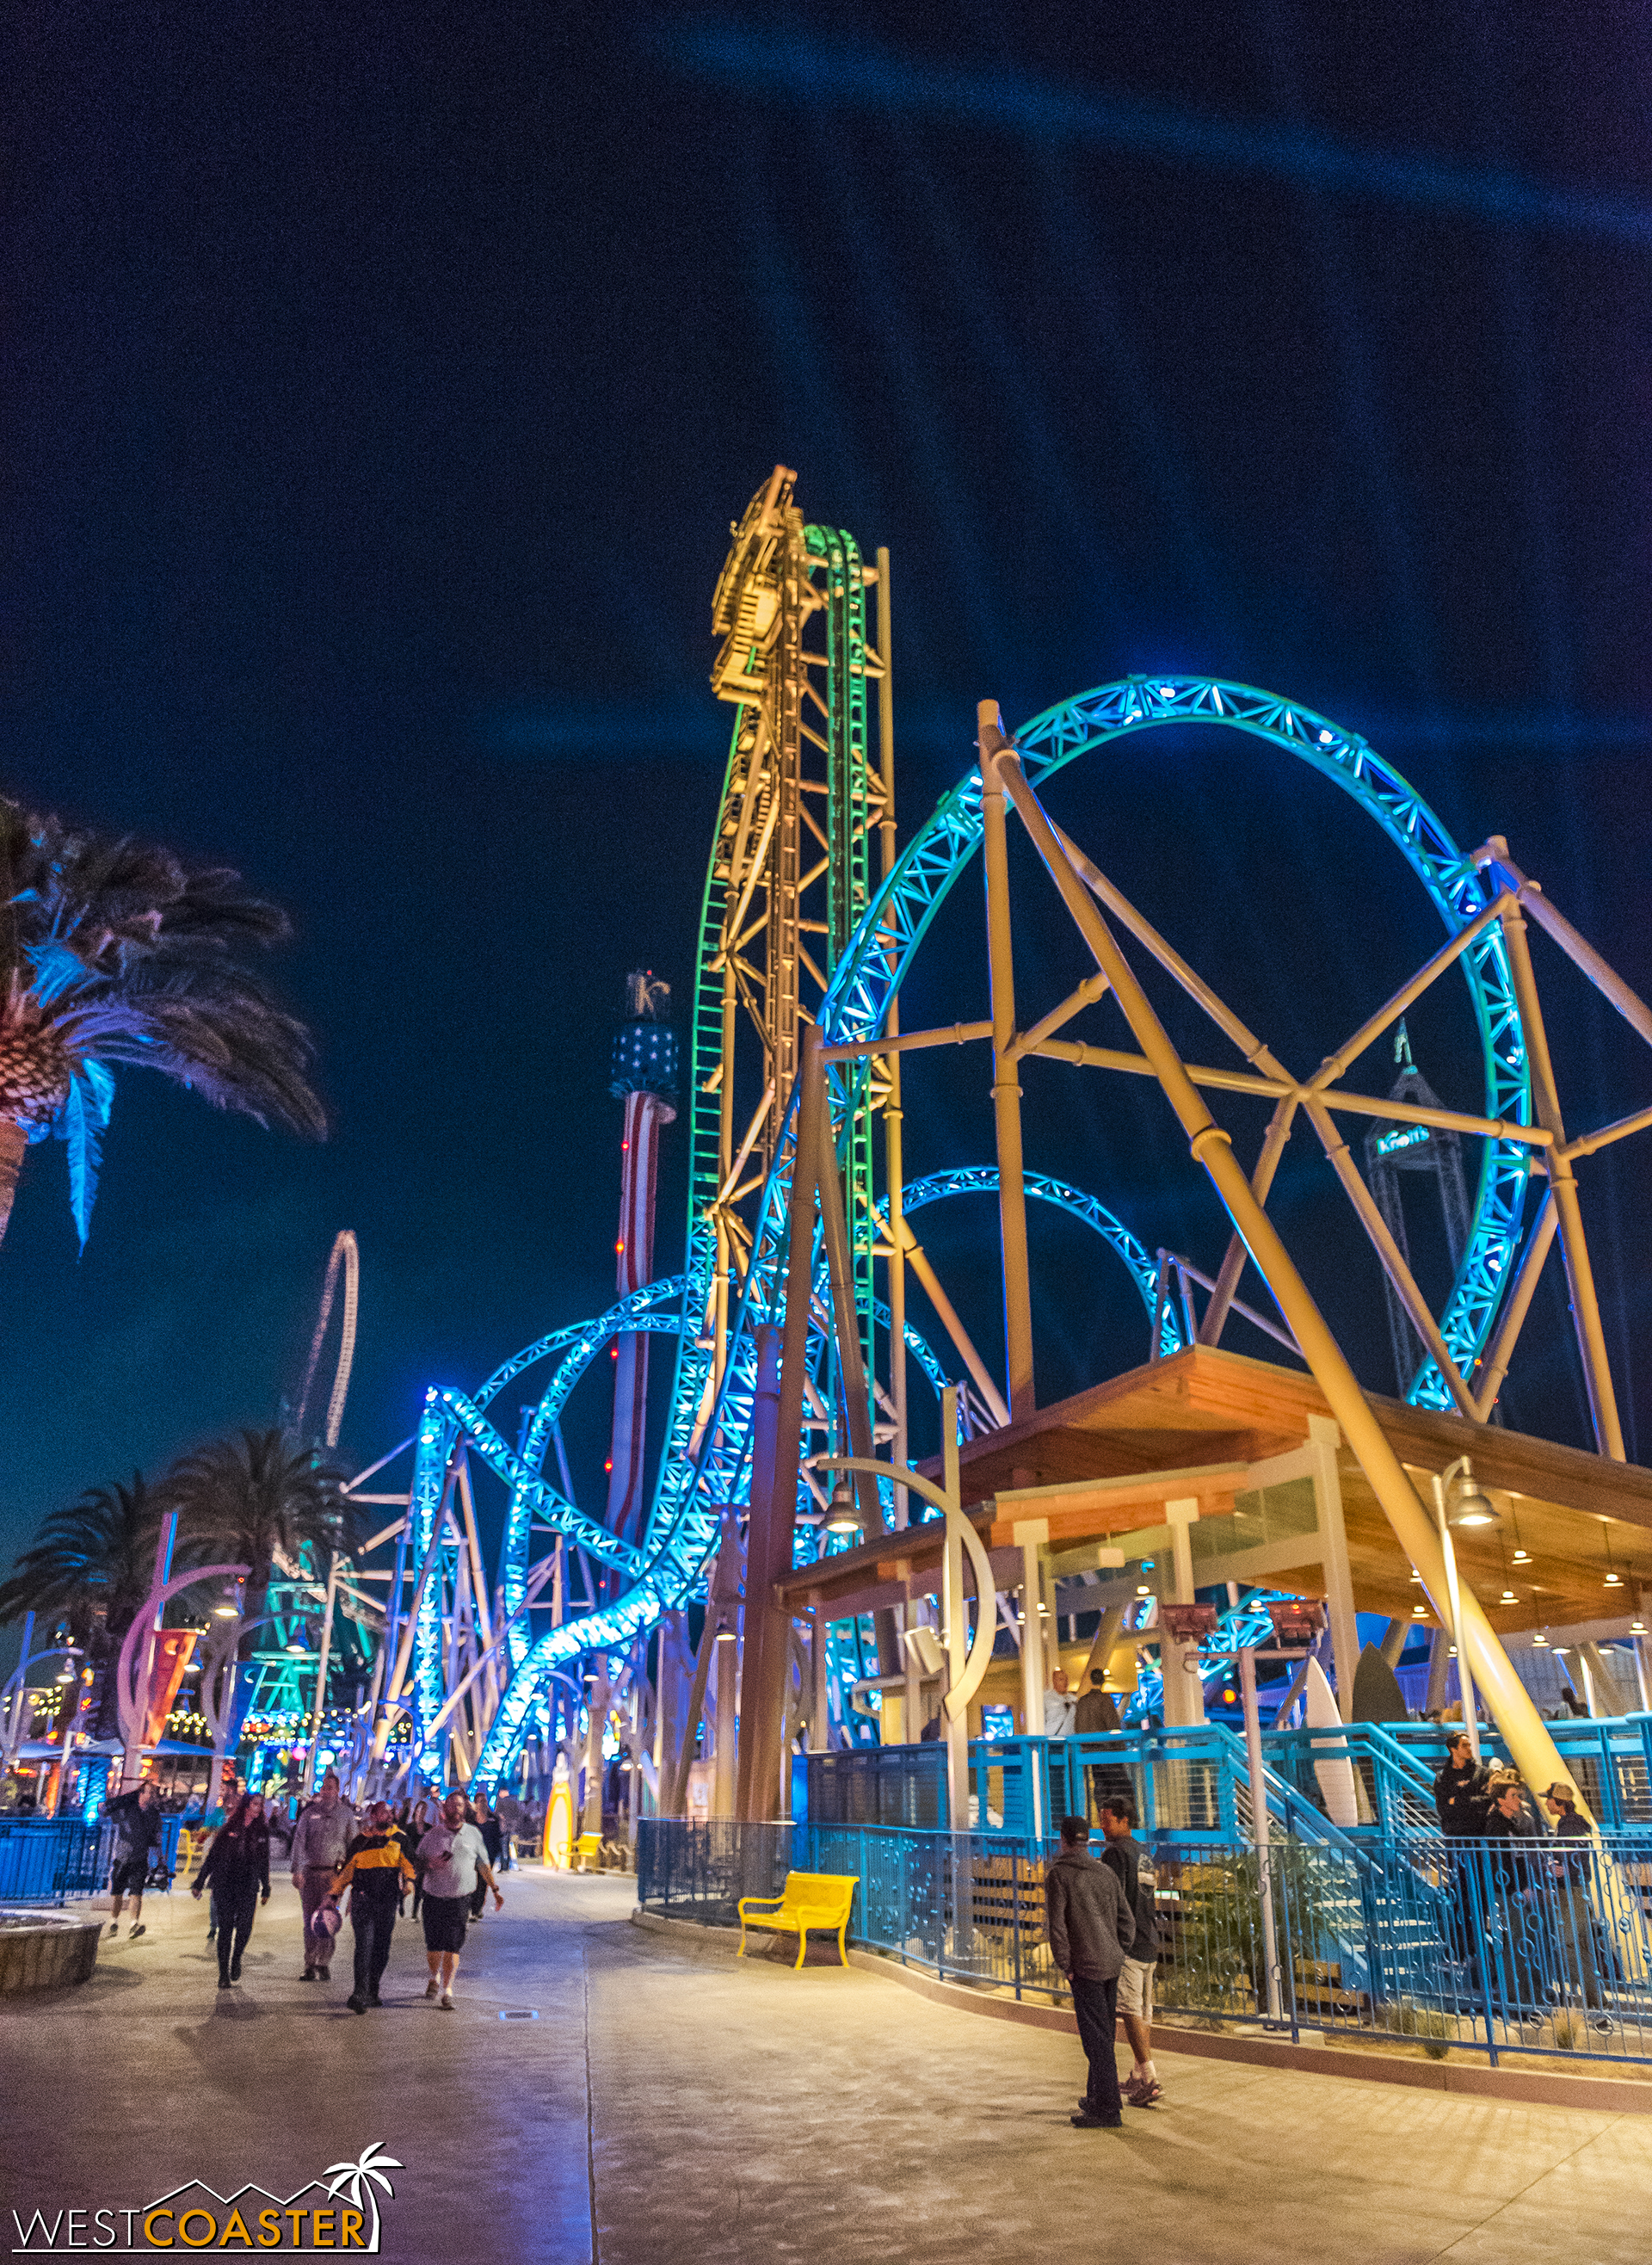 The coaster ain't too shabby at night either!